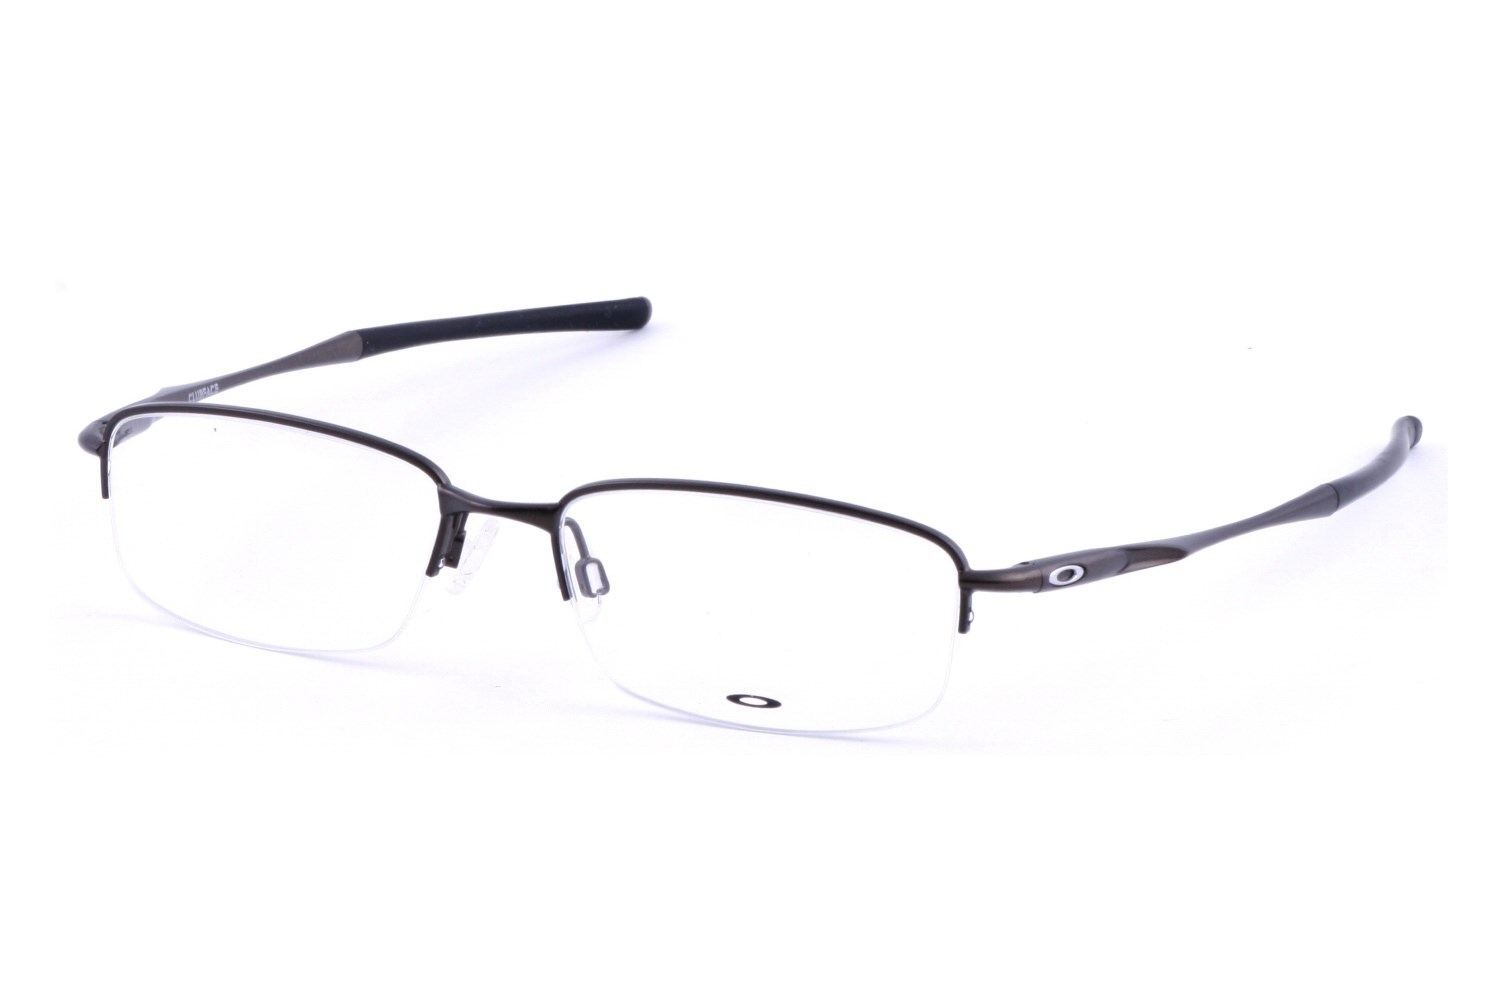 Eyeglass Frame Oakley : Cheap Oakley Eyeglass Frames